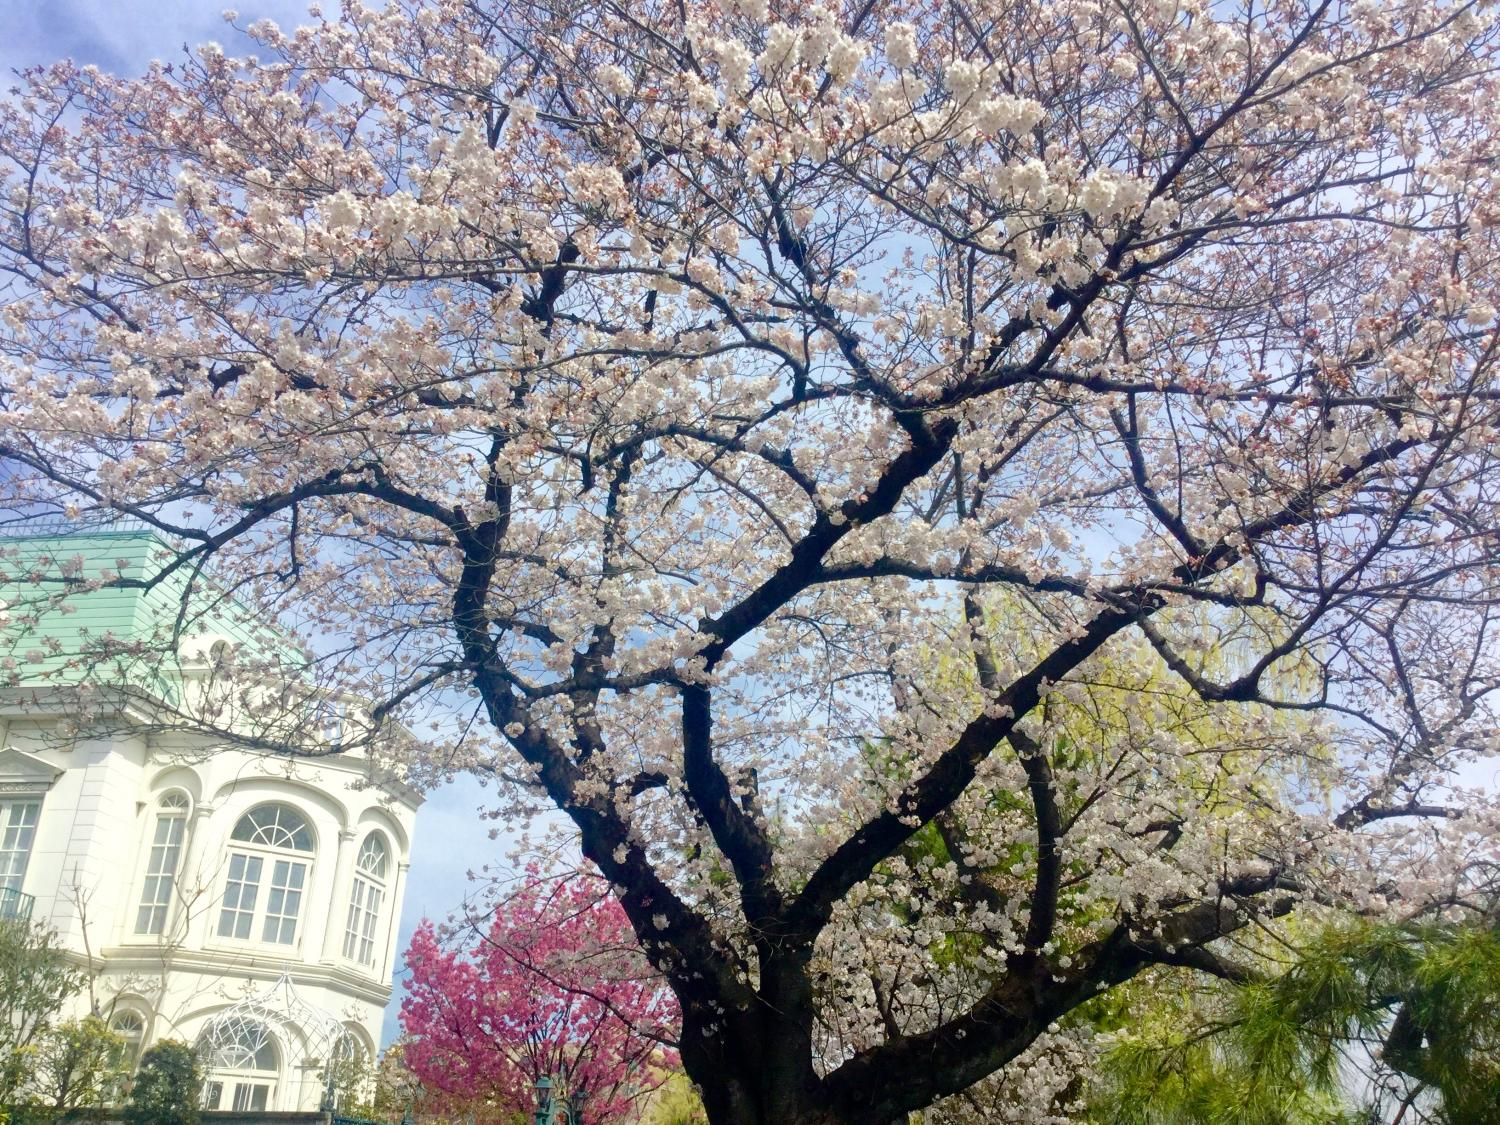 Cherry blossoms are very beautiful!